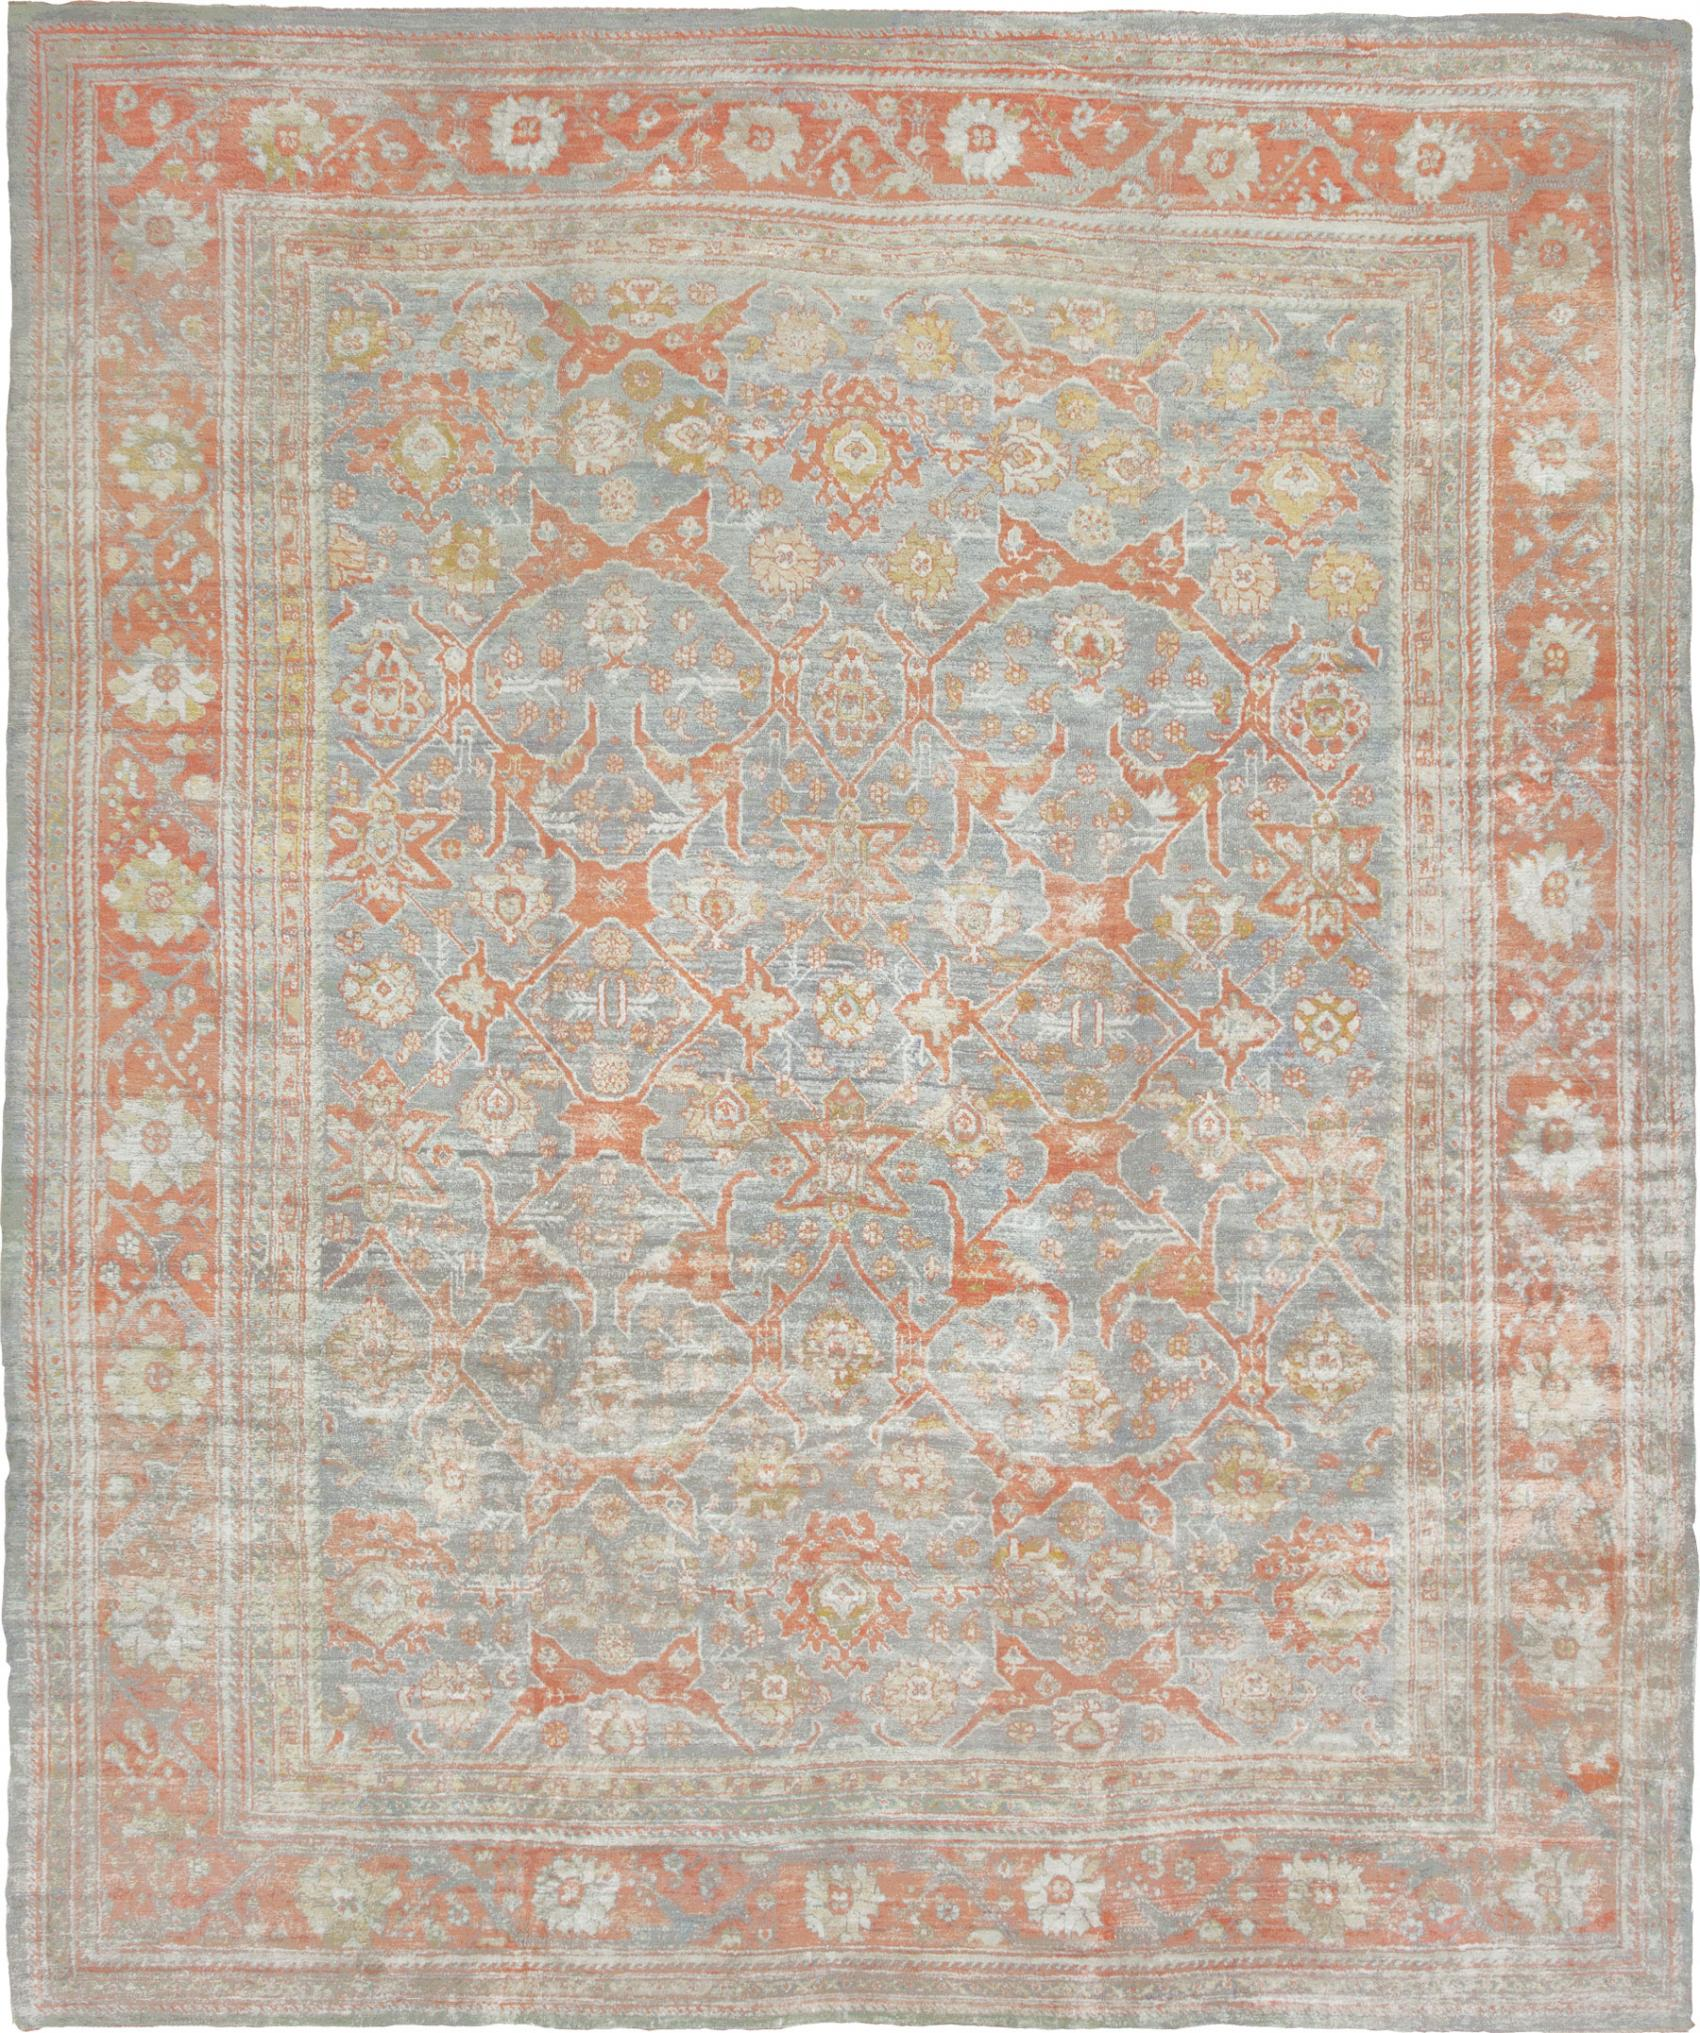 Elegant oushak rugs for floorings and rugs ideas with antique oushak rugs